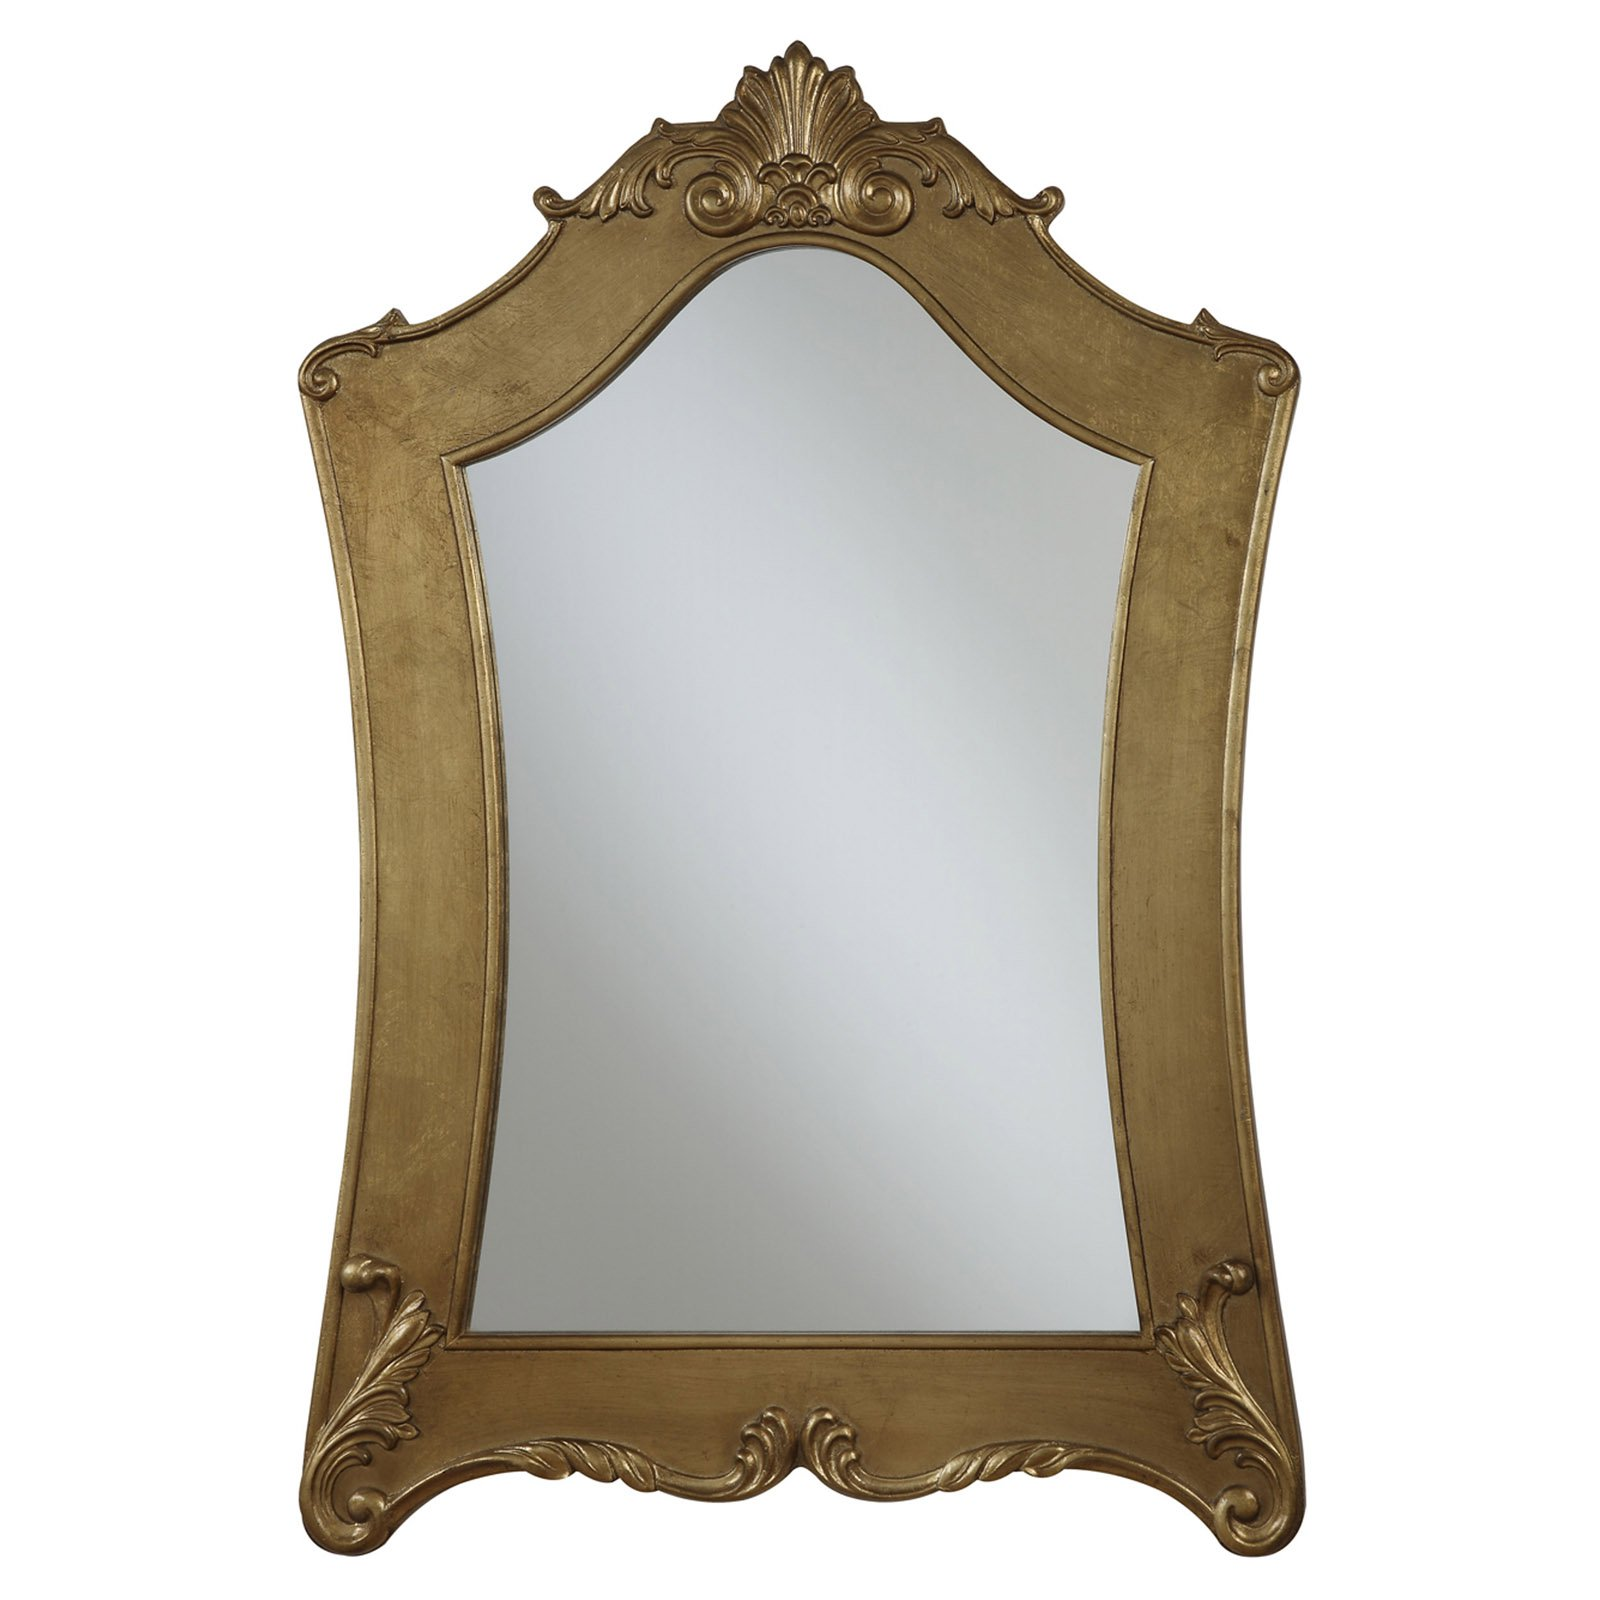 Convenience Concepts Gold Coast Victorian Gold Frame Mirror 33.5W x 48H in. by Overstock